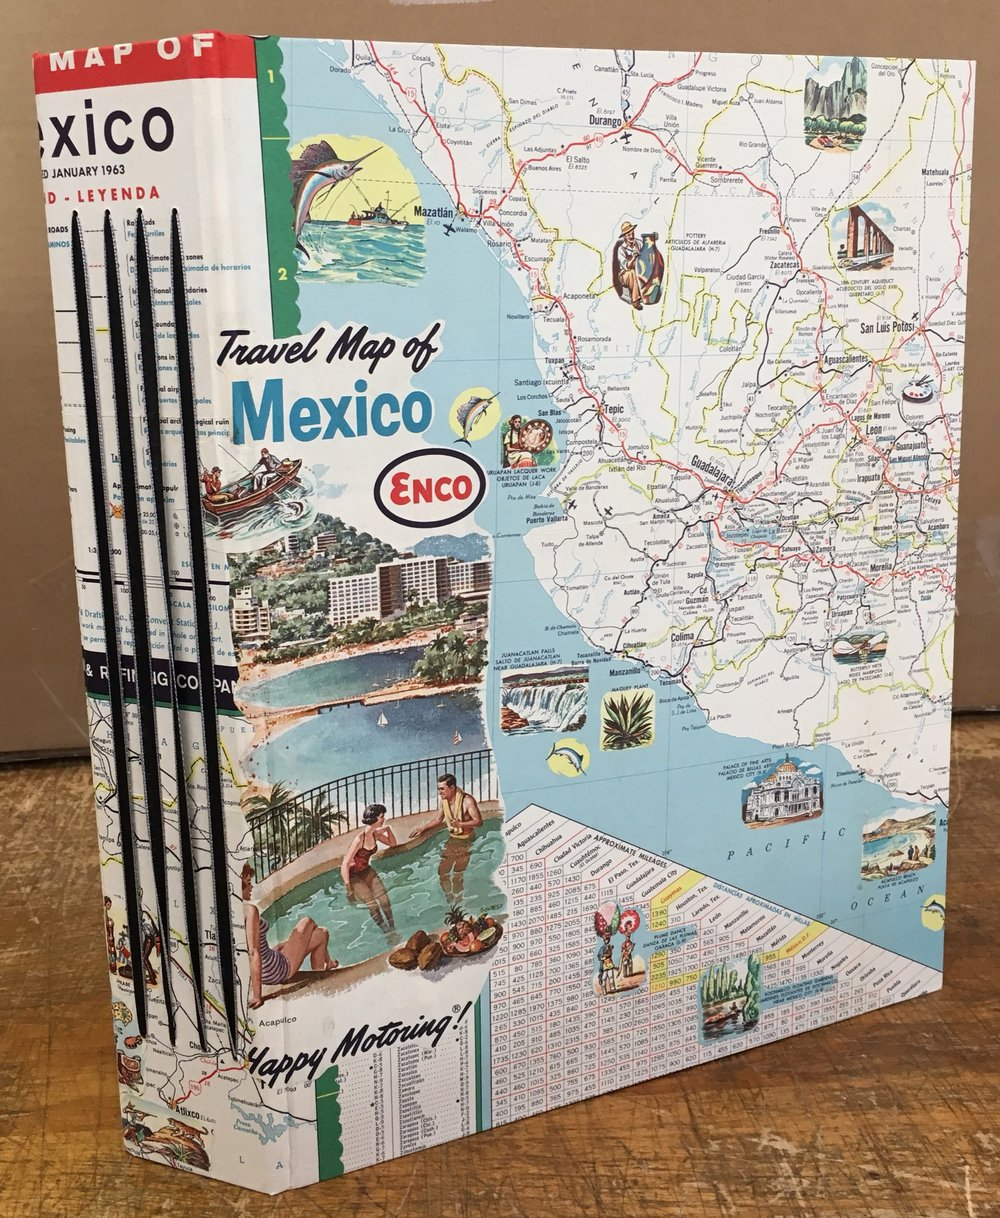 Mexico - Guest book for vacation home